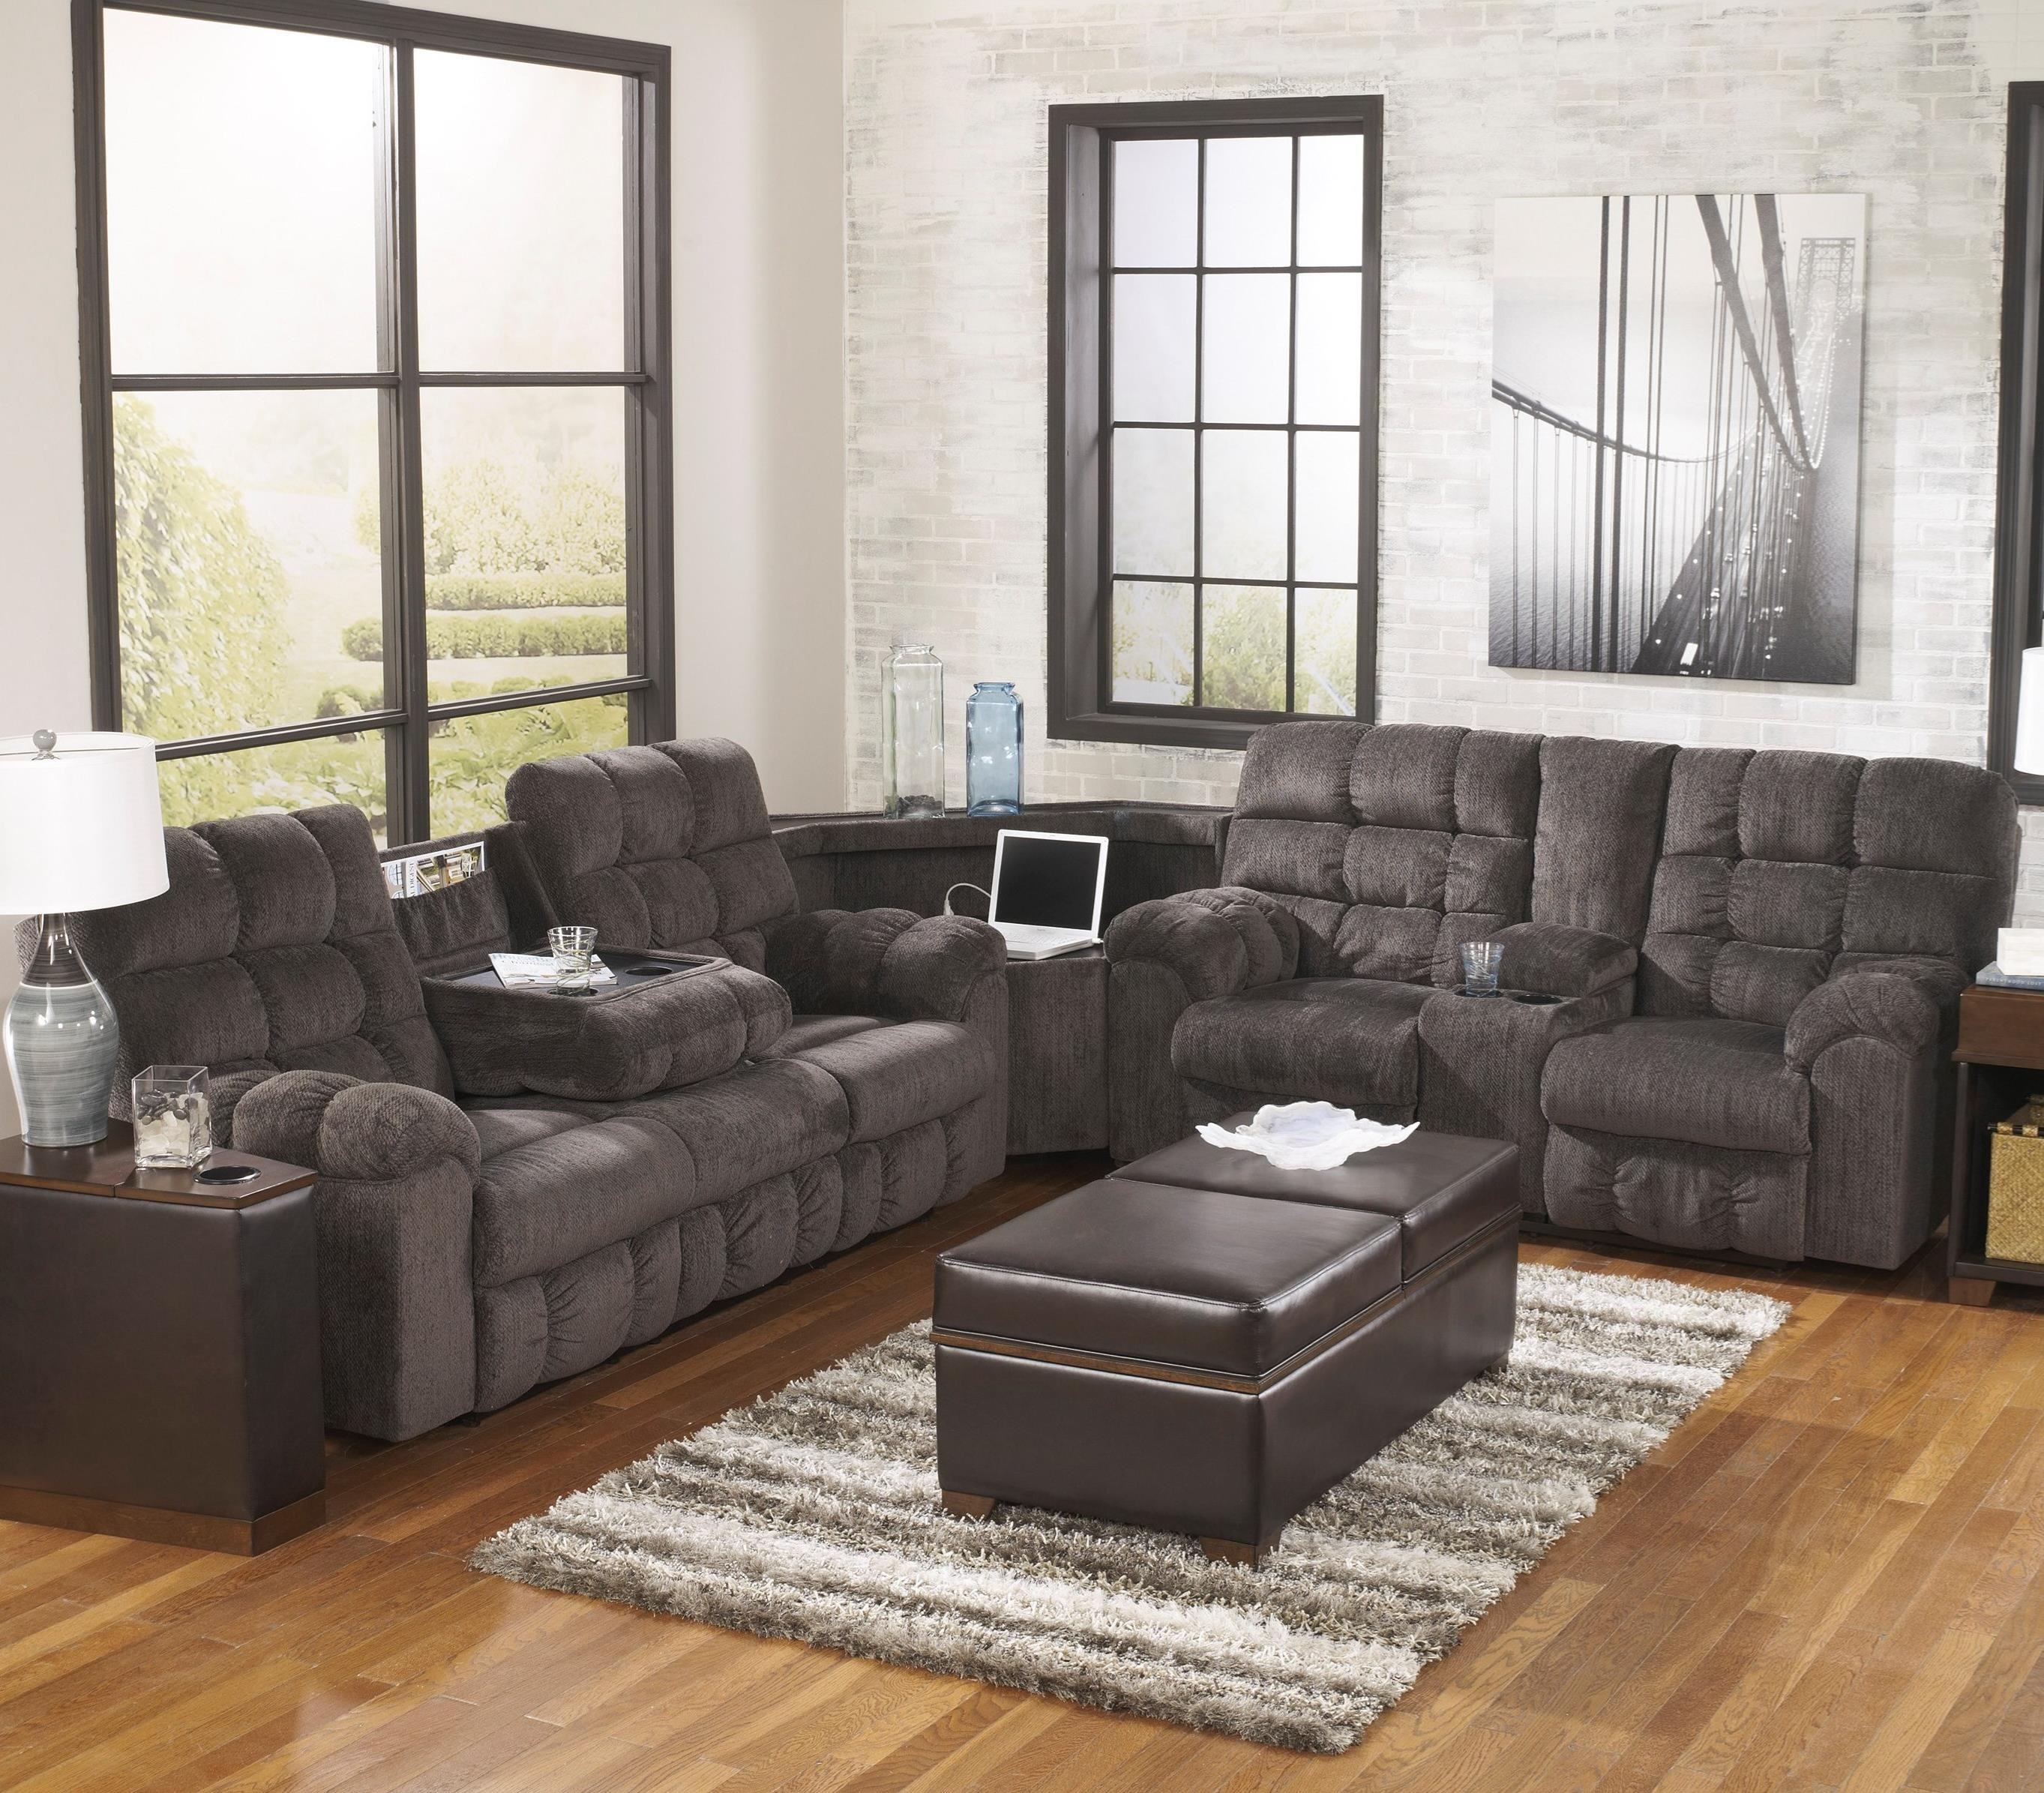 Reclining Sectional Sofa With Right Side Loveseat Cup Holders And Charging Station By Signature